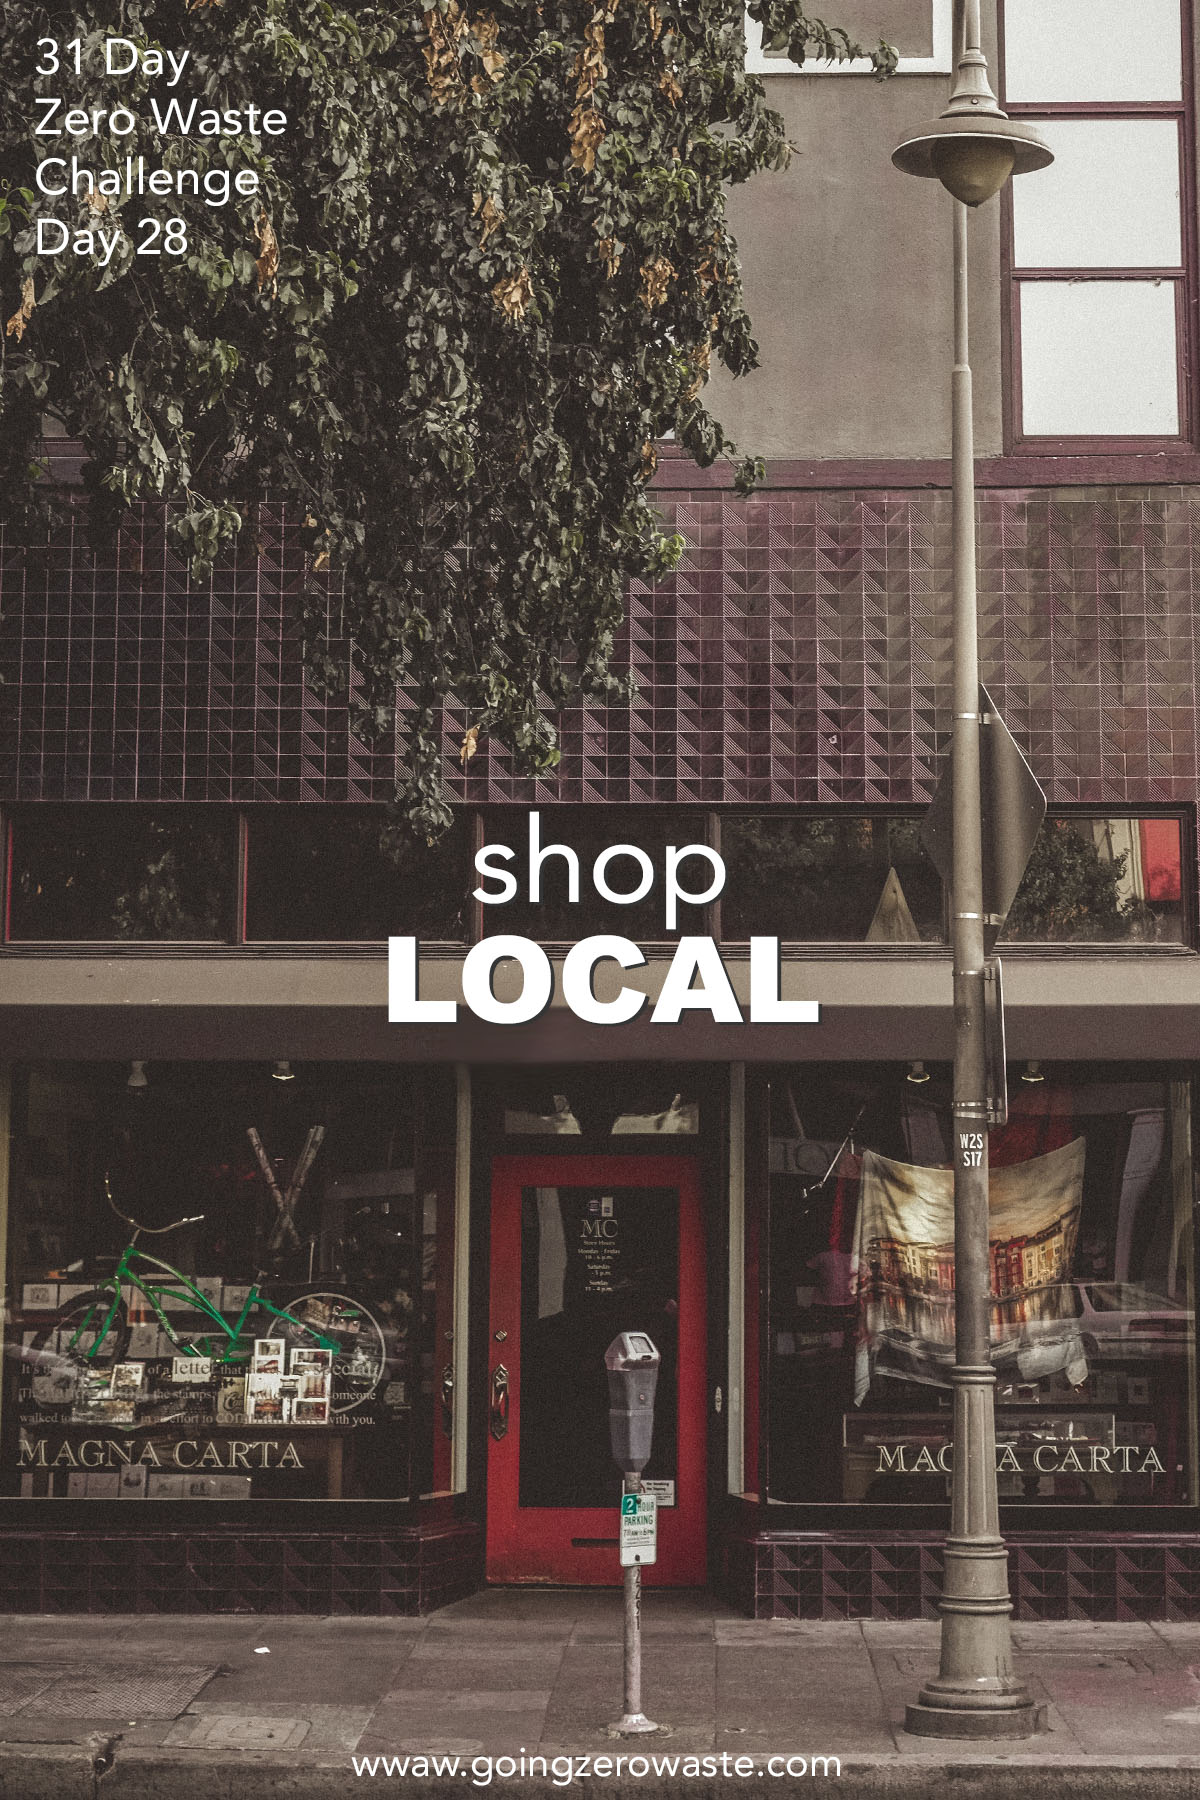 Shop Local - Day 28 of the Zero Waste Challenge